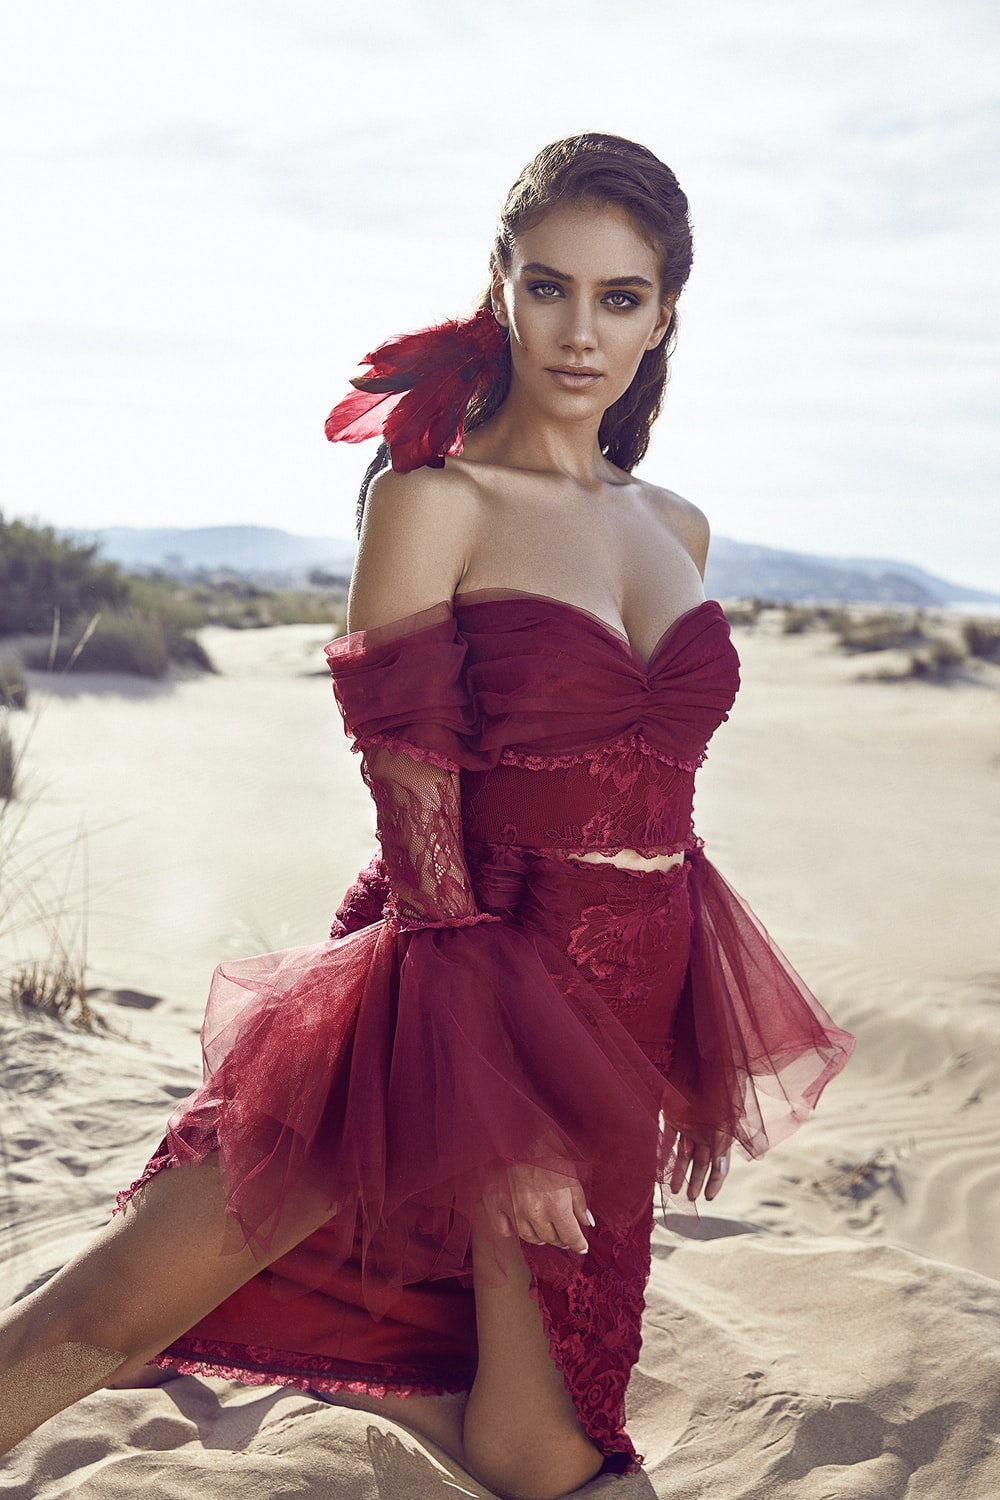 woman wearing red dress kneeling on sand